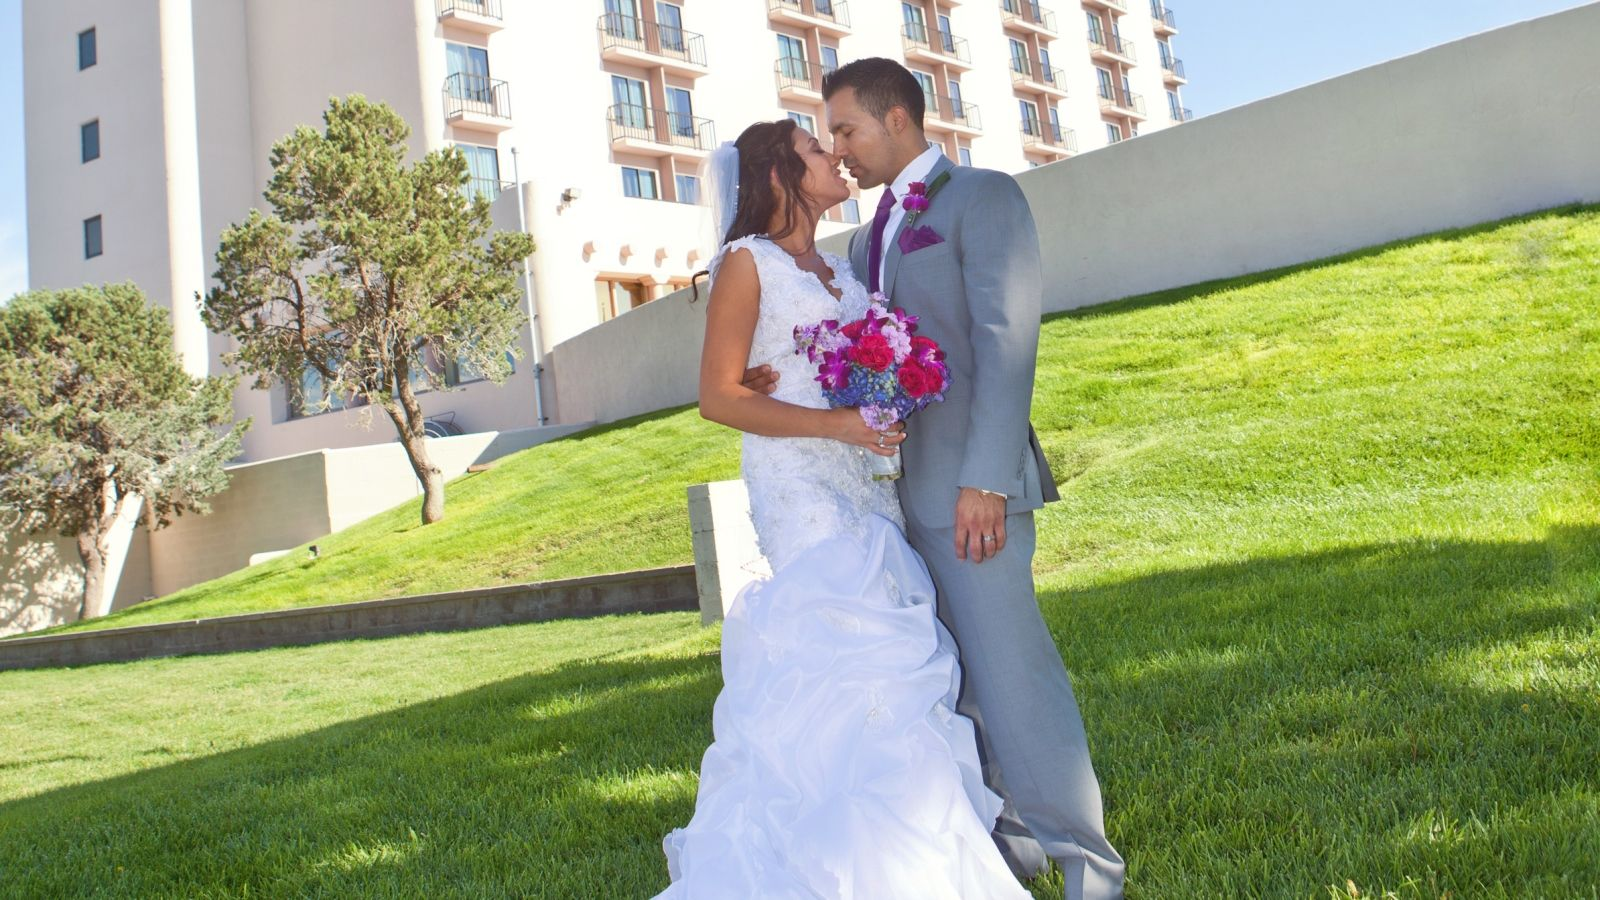 Albuquerque Wedding Venues - Offer